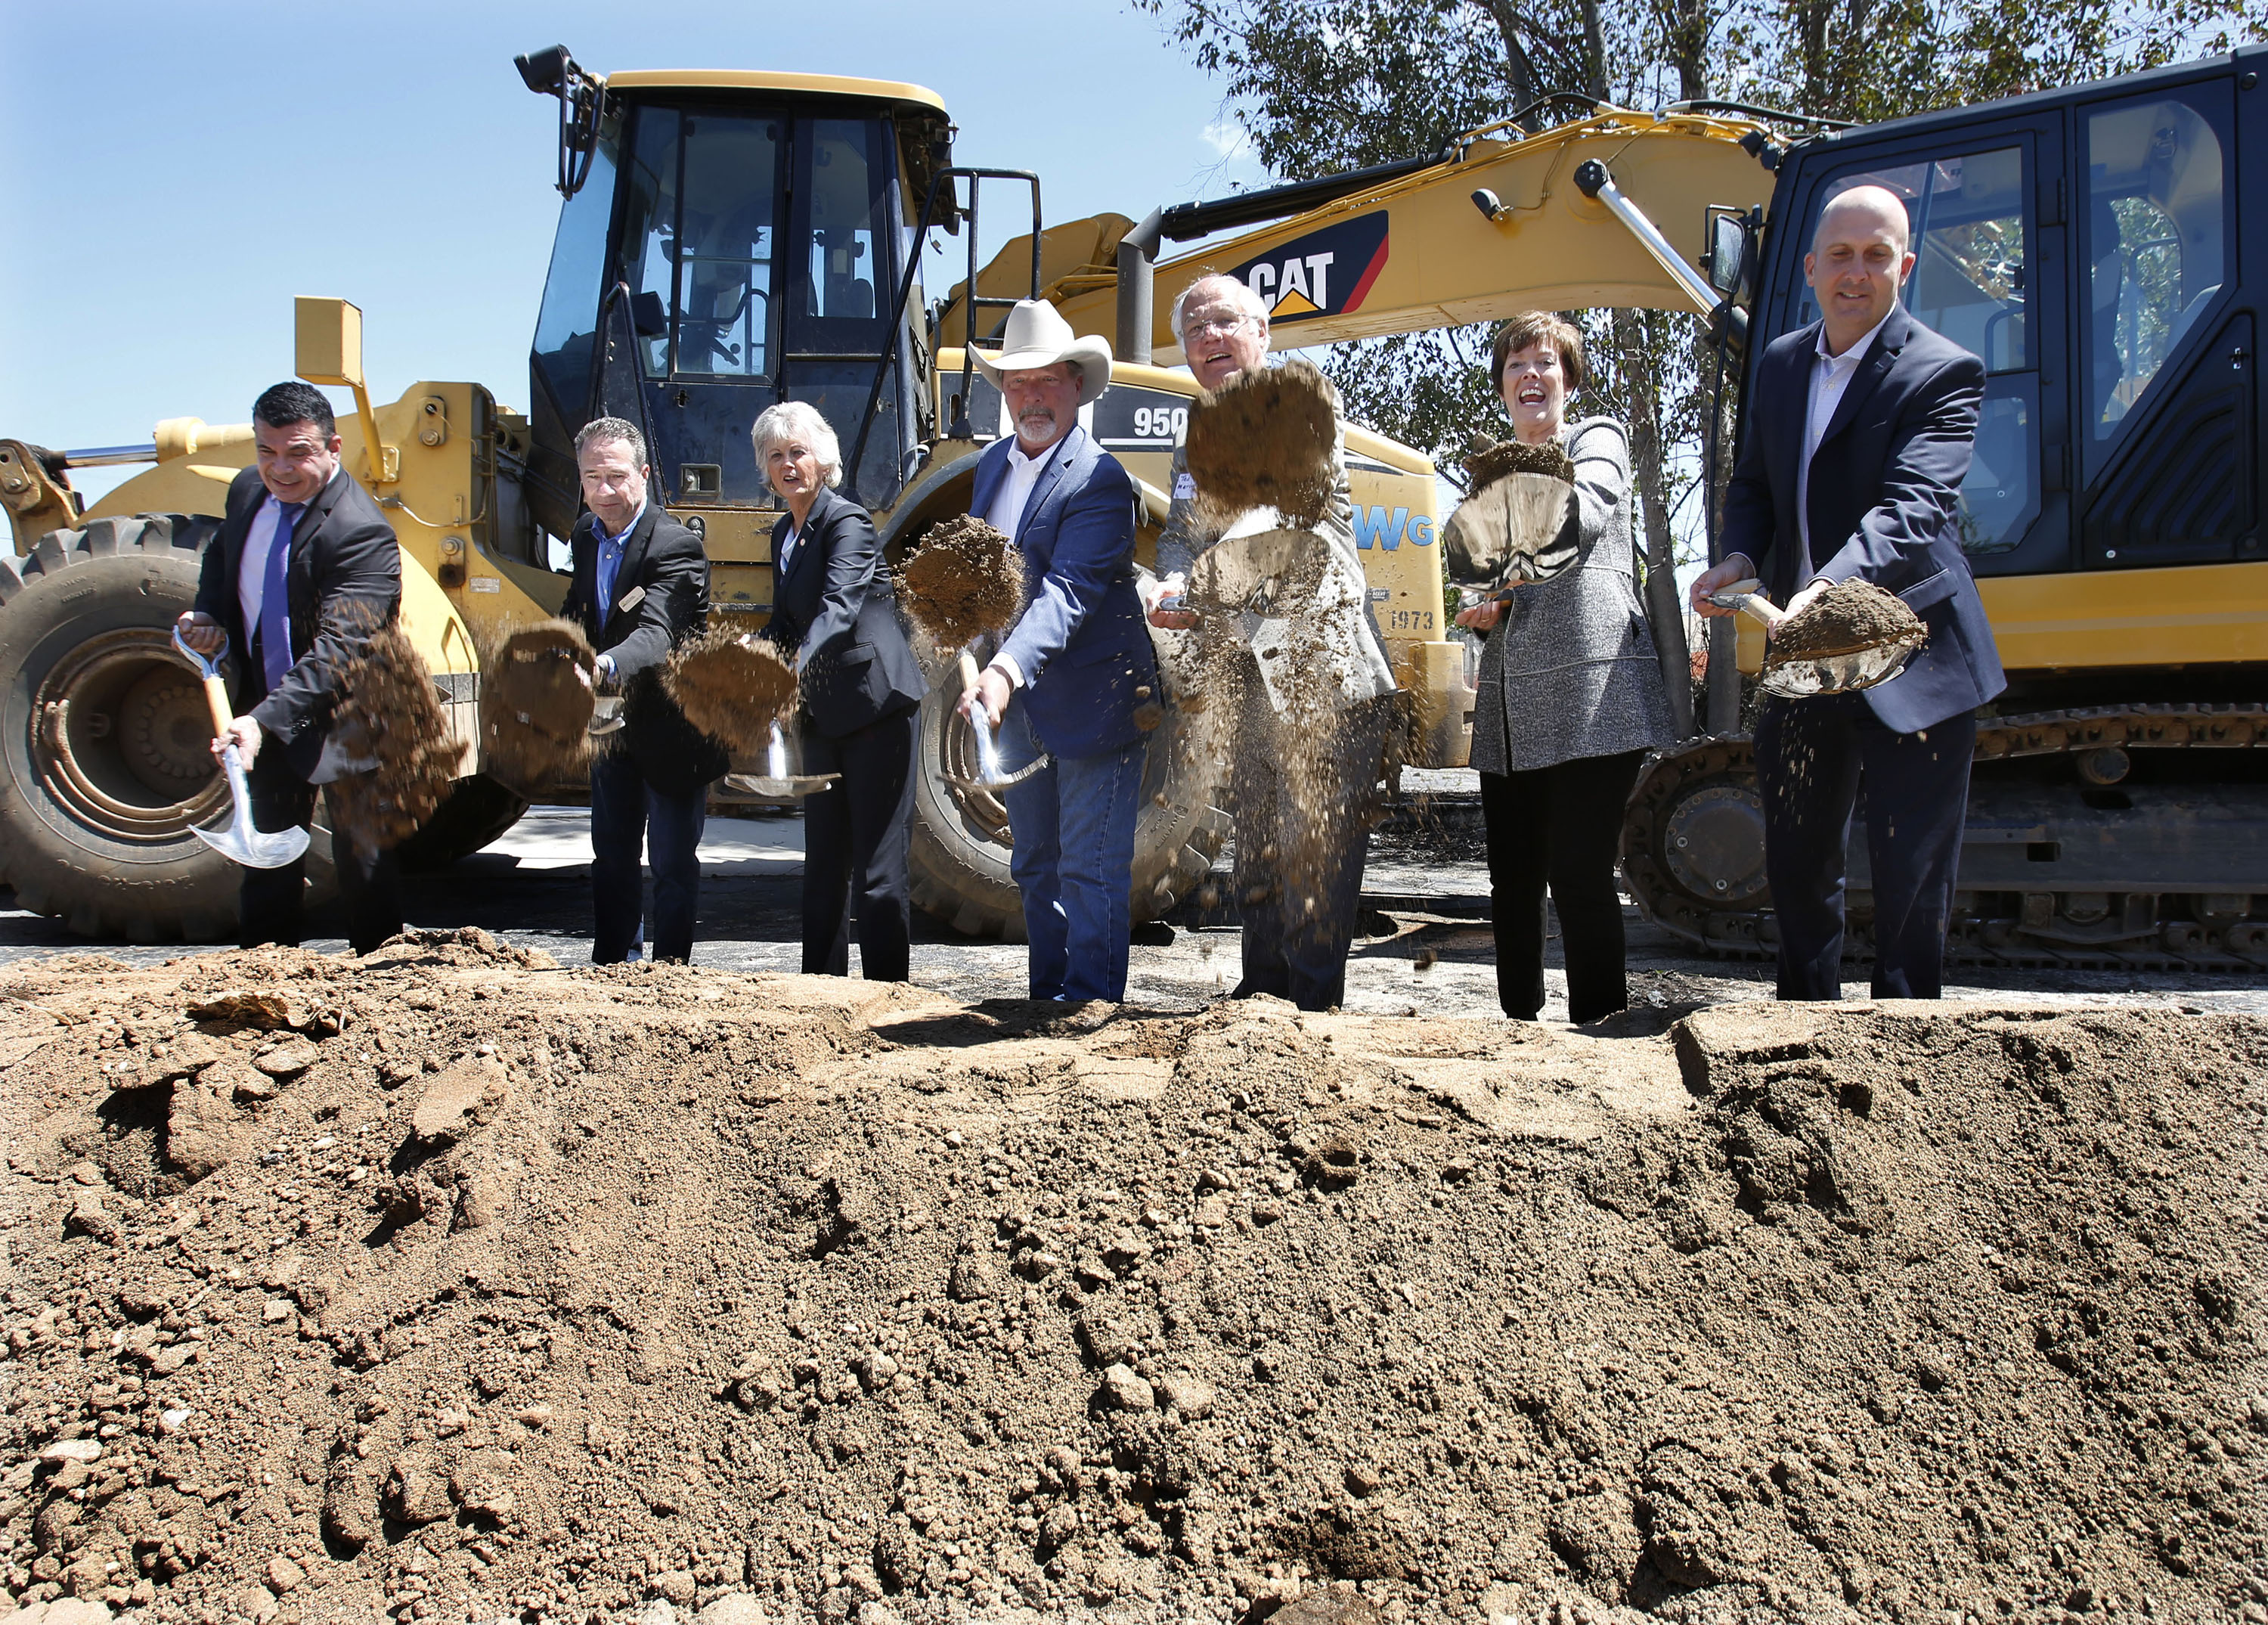 Villa de Vida breaking ground with shovels